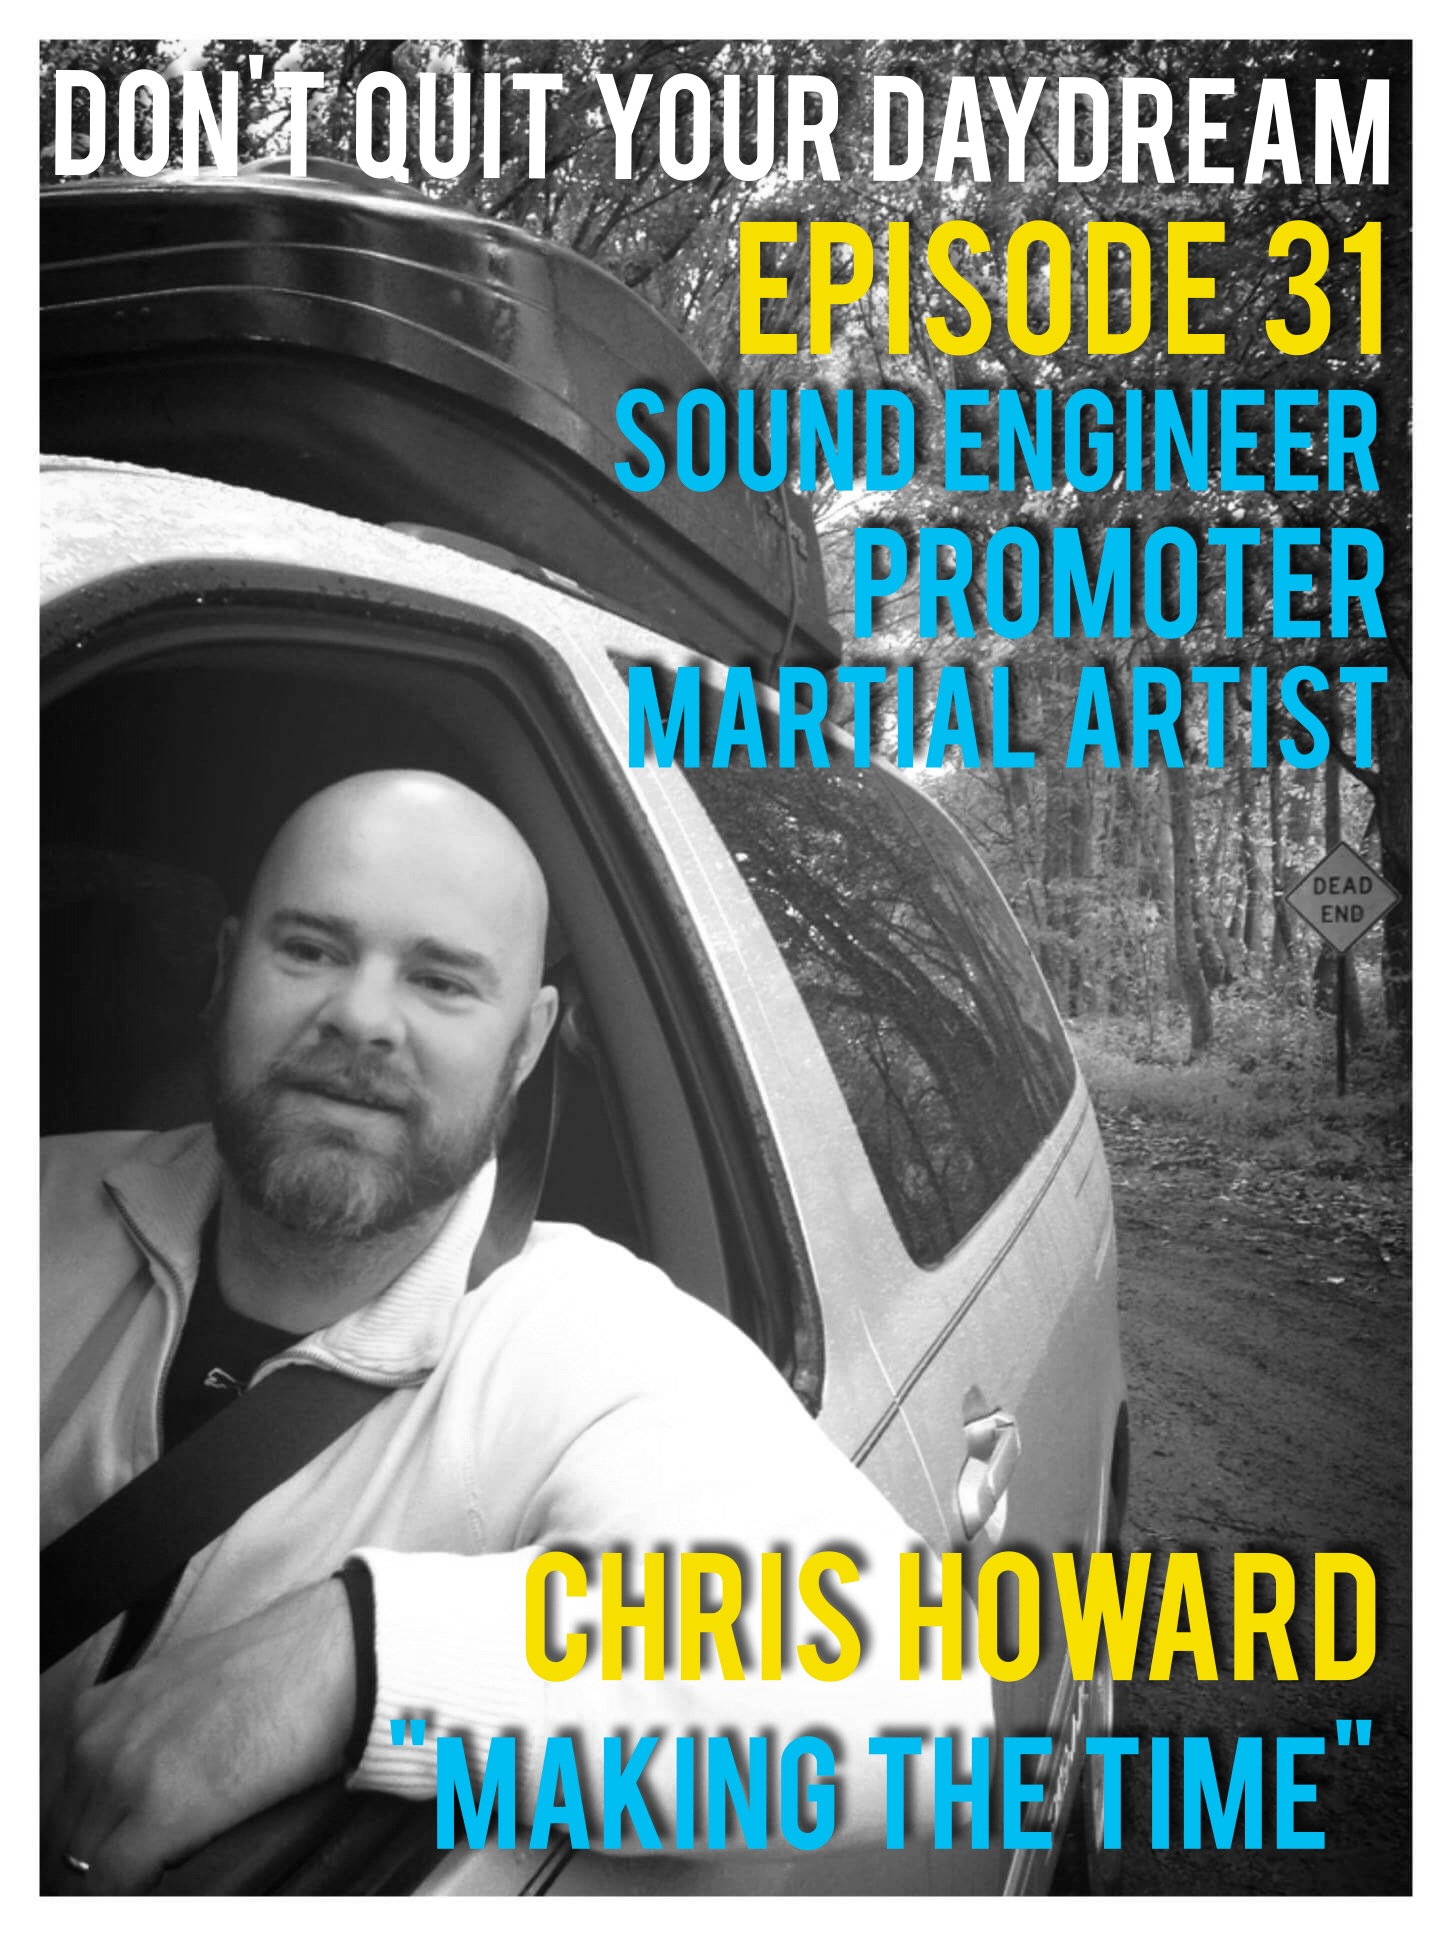 "This week's guest Chris Howard is the perfect representative of someone who never quits their daydream. Chris is truly one of the busiest people we know as he is able to maintain a superb balance between countless hobbies and his family life. He joins us to discuss sound engineering, practicing Brazilian Jiu-Jitsu and promoting for the fantastic rock/blues band Calabash! Chris gives great advice during this whole episode so get your pen and notebook ready.     Song of the Week: ""Upside Down"" by Calabash. This is just one of many great songs being released by the band's new album, which will be out on Oct 29th. If you are an ""Evansvillian"", come join us at their album release party hosted by Lamasco's Bar and Grill! Make sure to follow them along and catch a live show ASAP. https://www.facebook.com/calabashband/"